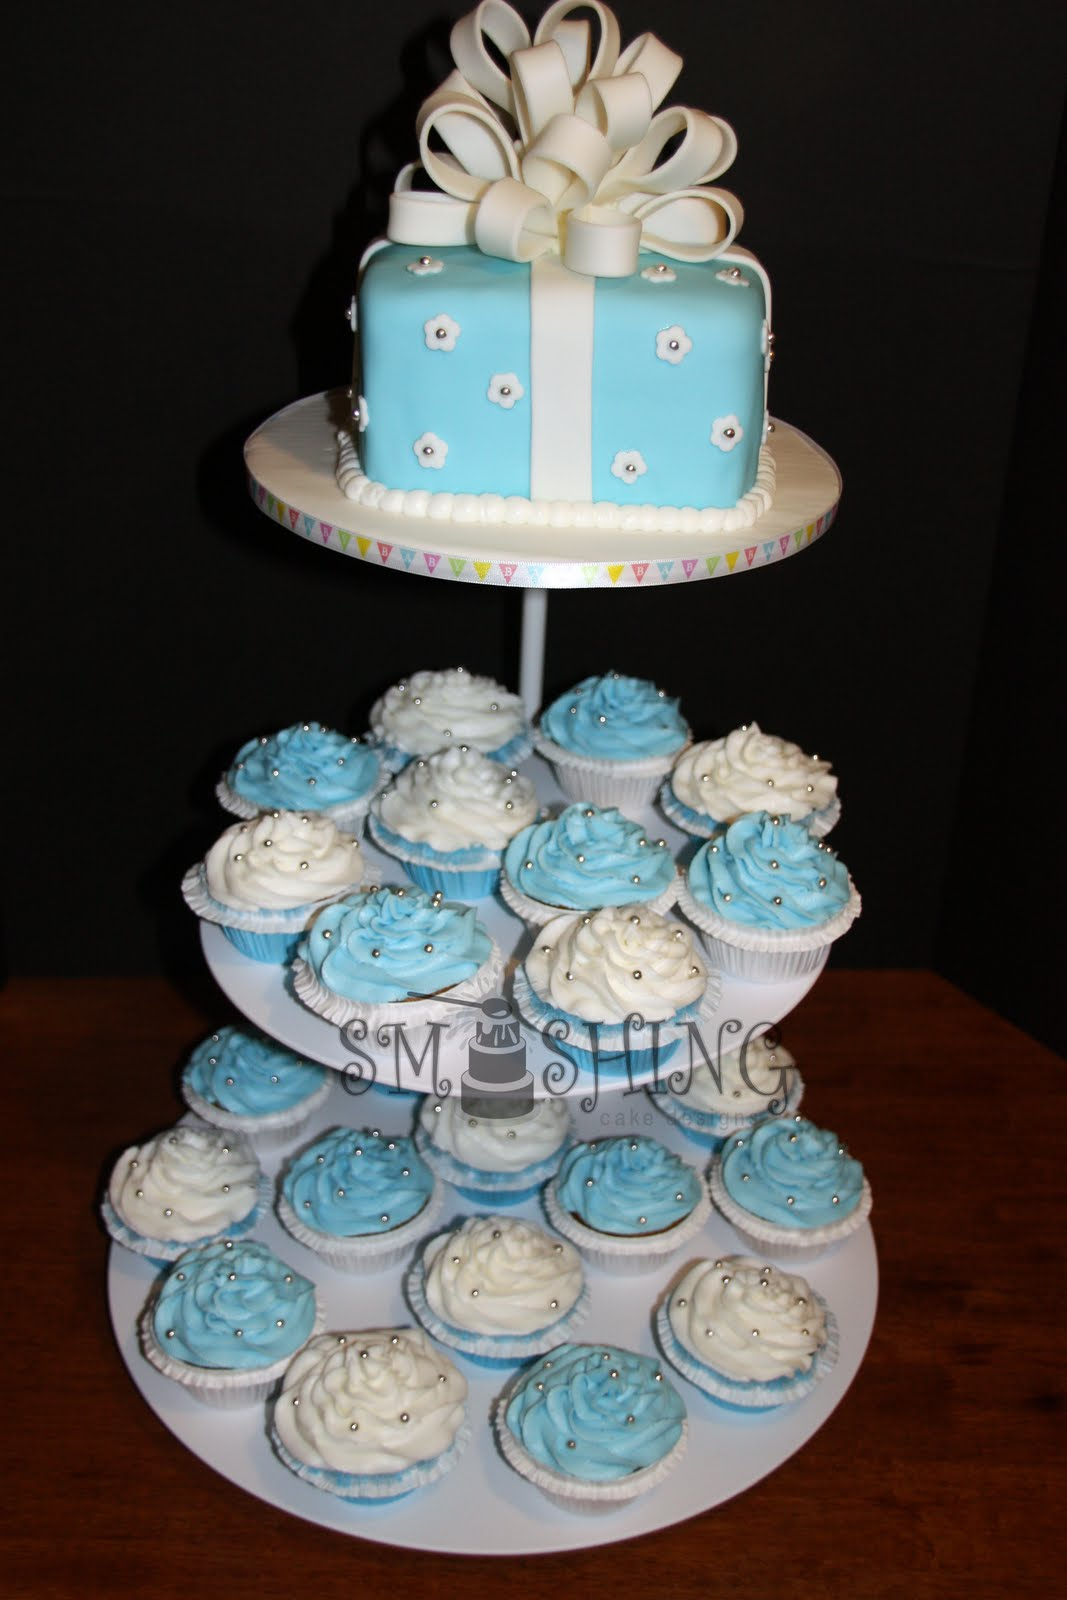 Cake Design Baby Shower : Smashing Cake Designs: Blue and white baby shower cupcake ...